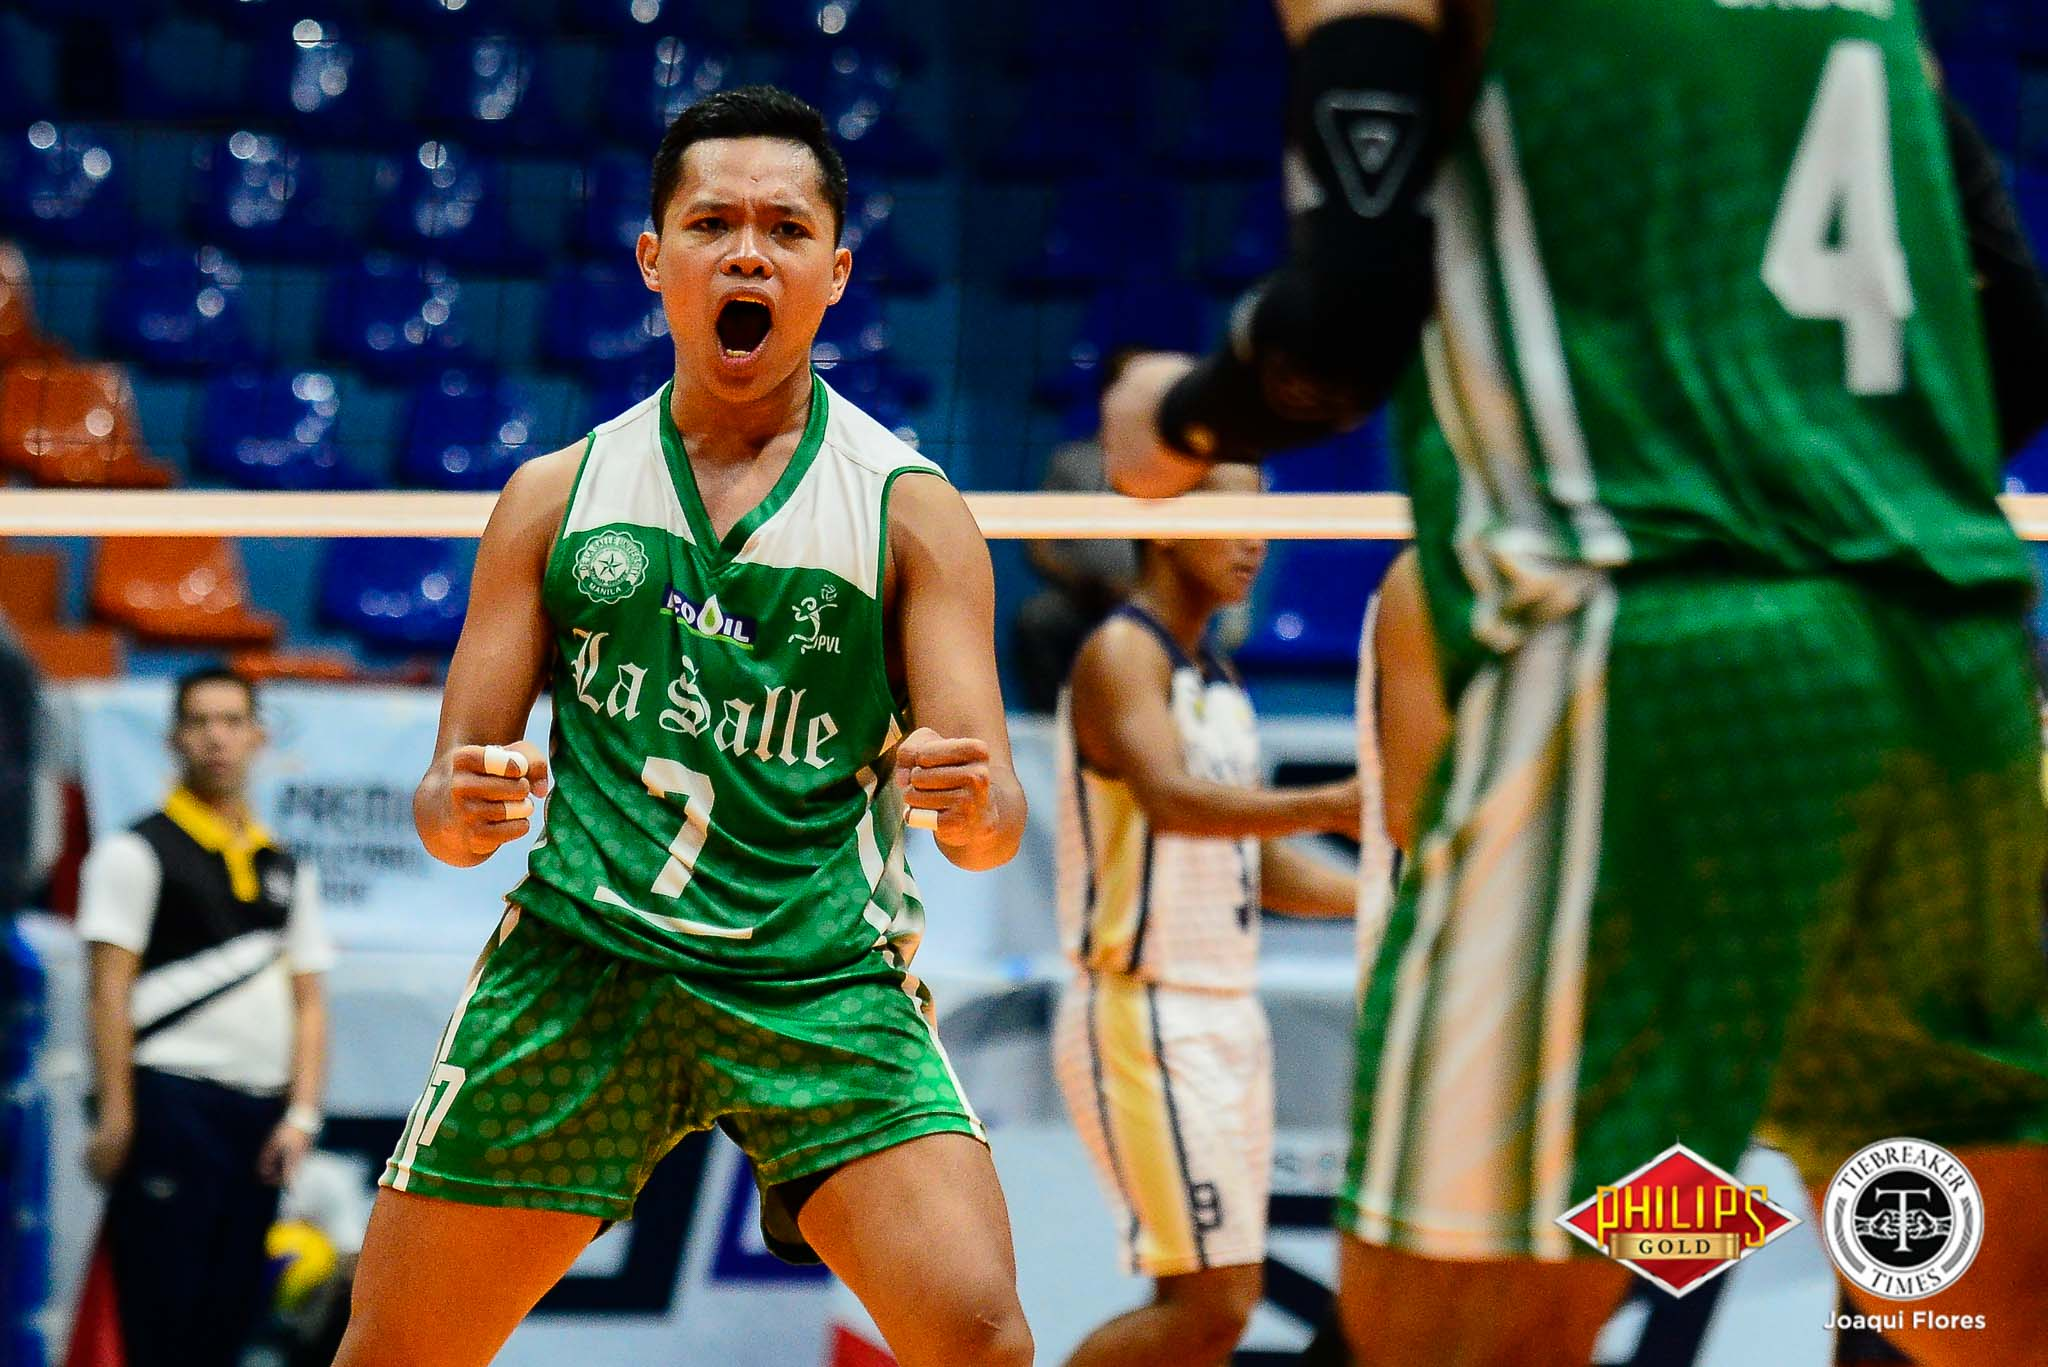 Tiebreaker Times La Salle shoots down NU with four-set upset DLSU News NU PVL Volleyball  Wayne Marco NU Men's Volleyball Norman Miguel Geriant Bacon DLSU Men's Volleyball Dante Alinsunurin Cris Dumago Bryan Bagunas 2018 PVL Season 2018 PVL Men's Collegiate Conference